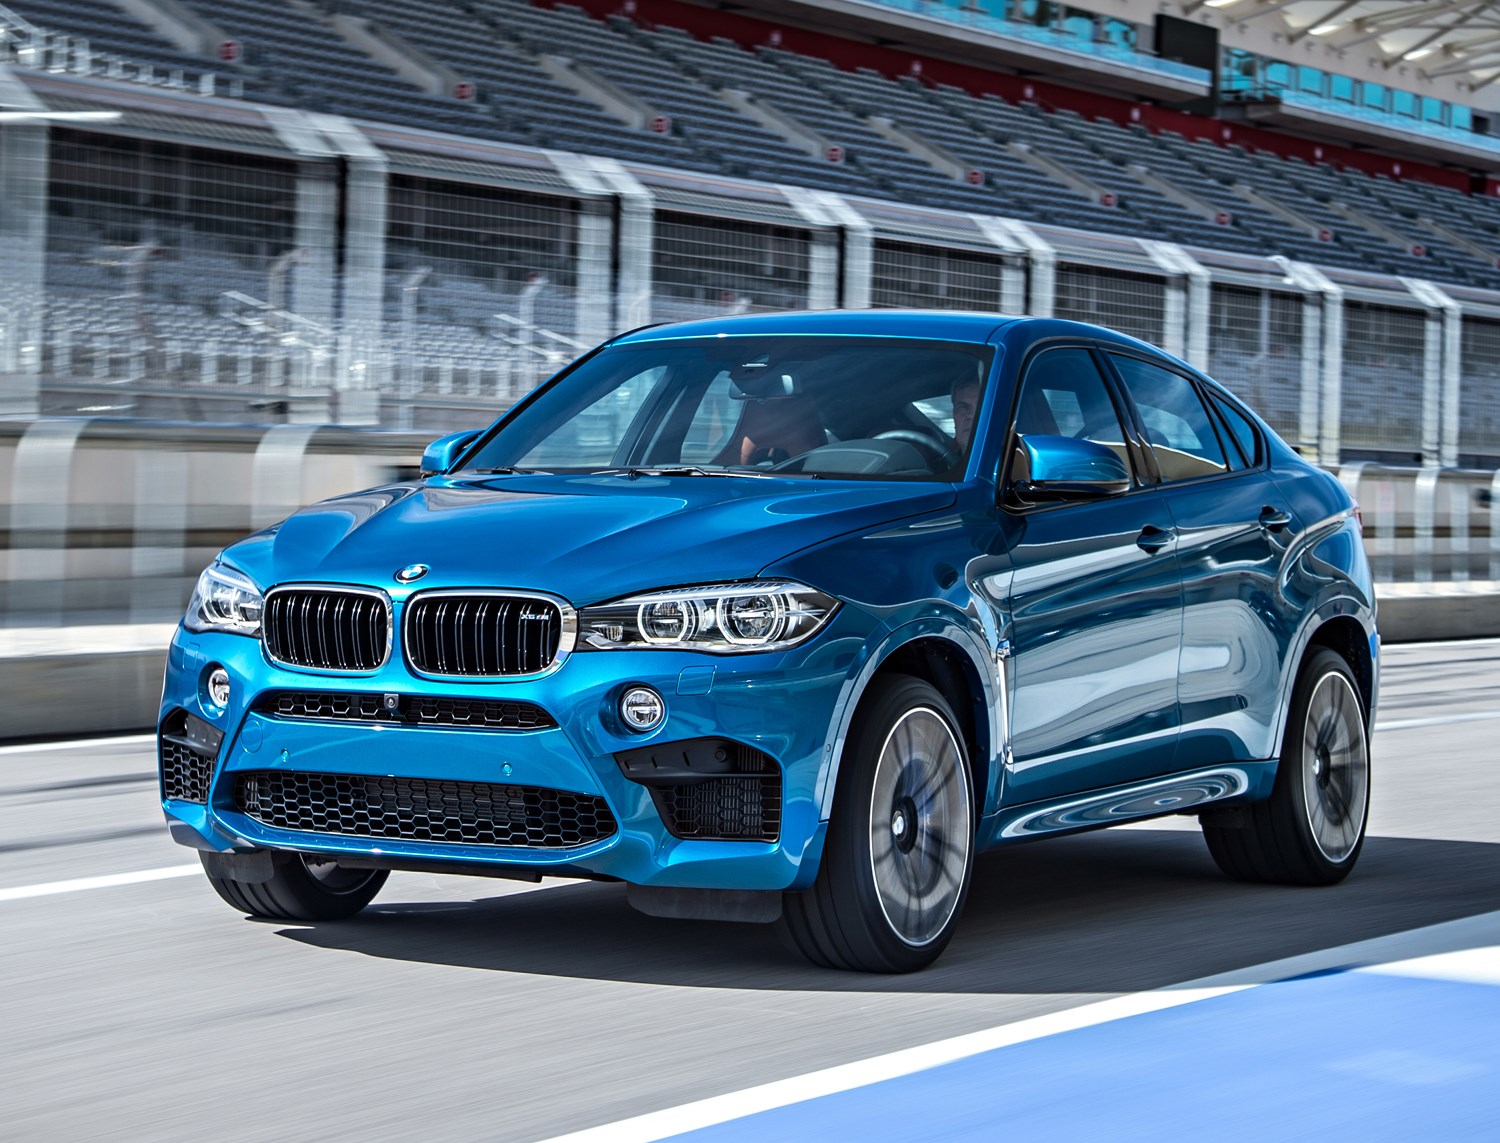 Bmw X6 4x4 Review 2014 Parkers